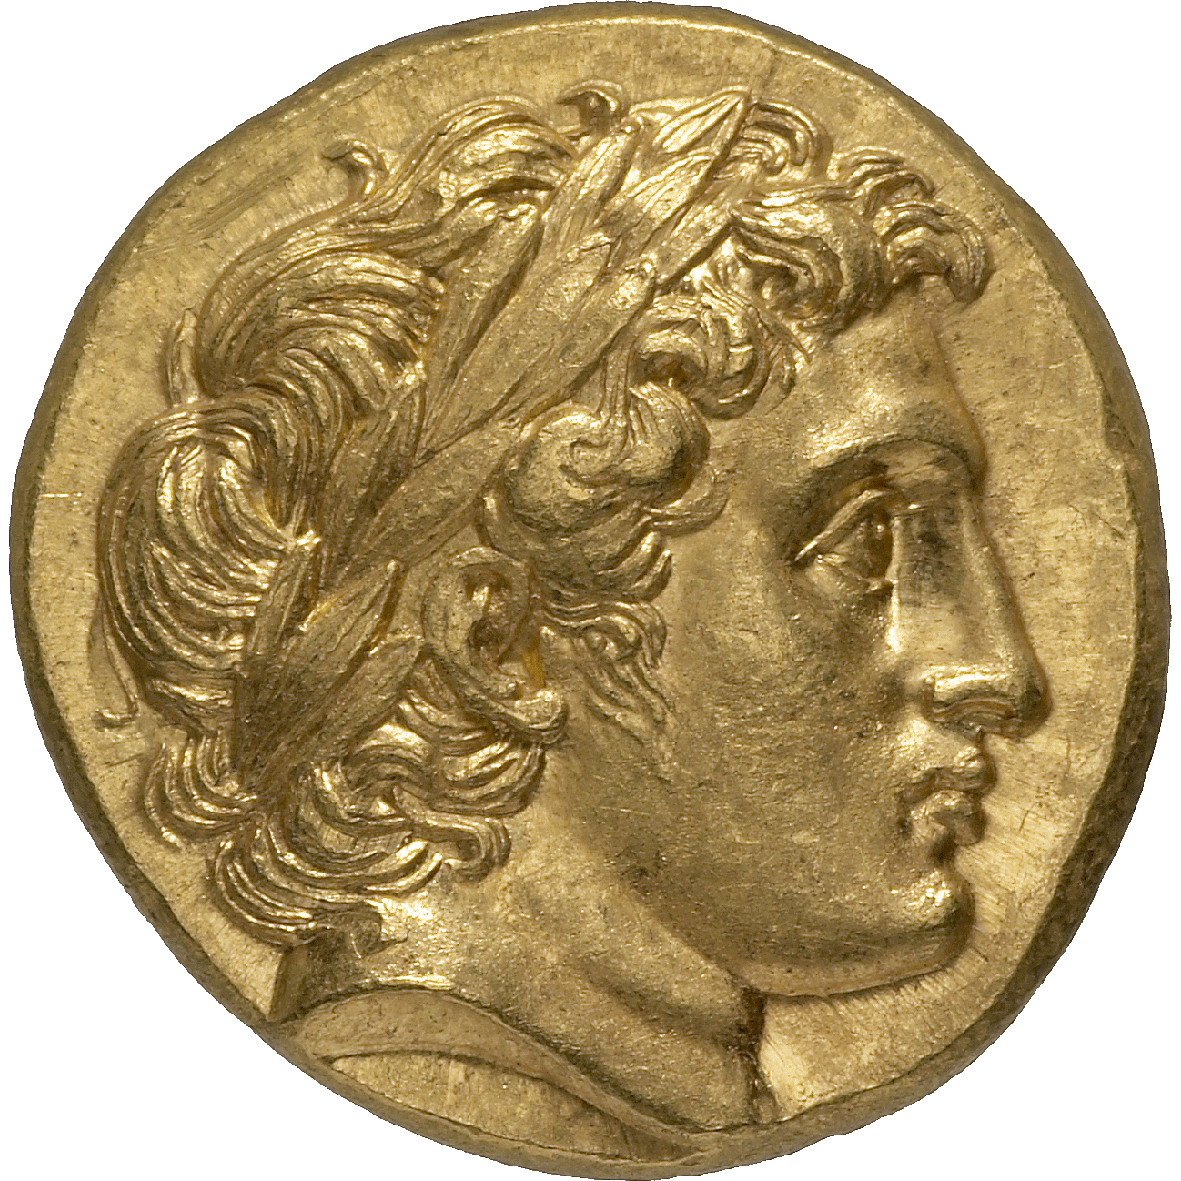 Kingdom of Macedon, Alexander III in the Name of Philip II, Stater (obverse)